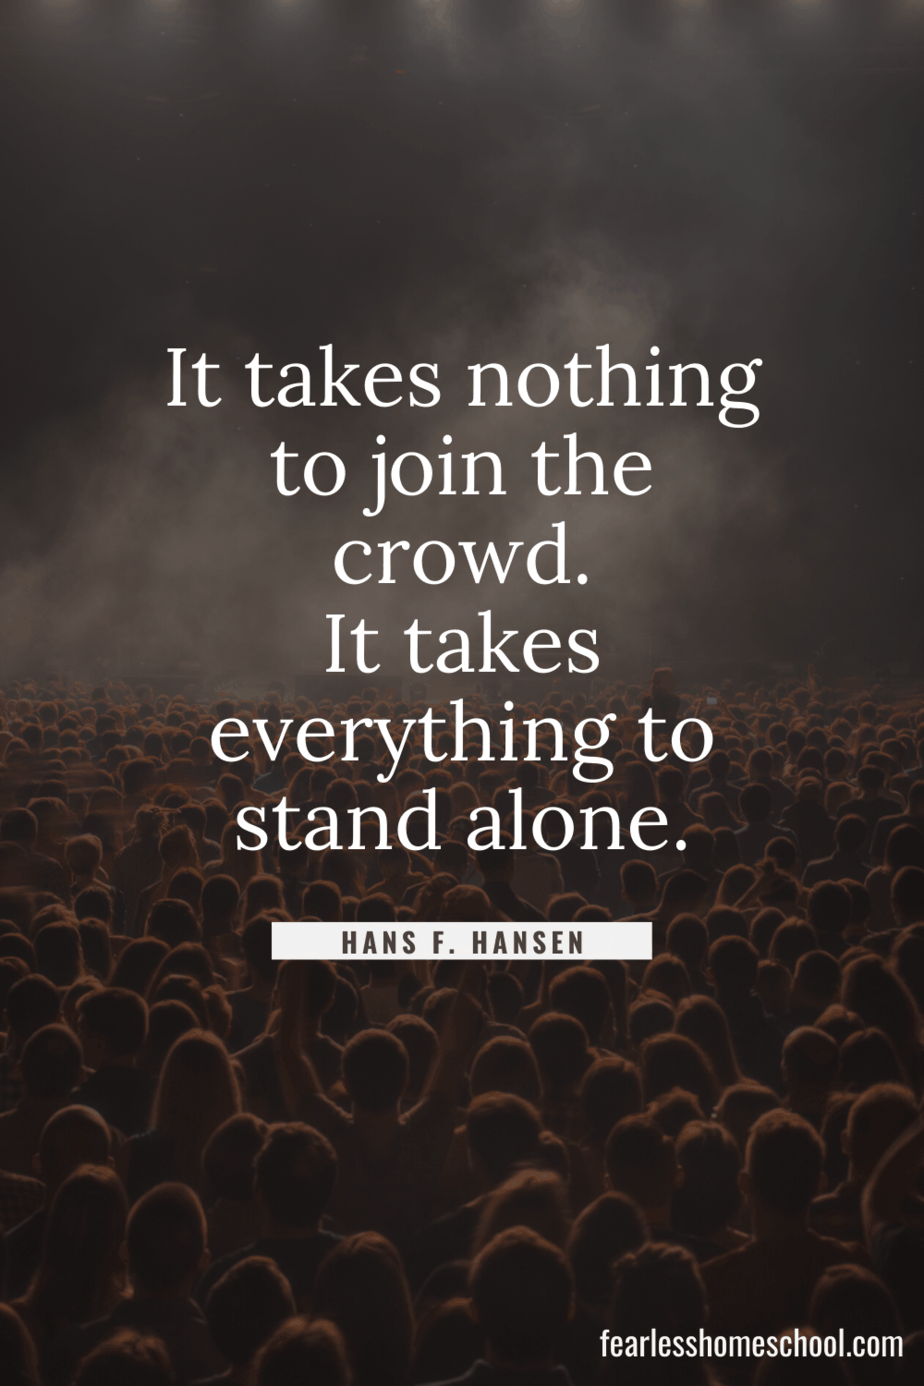 It takes nothing to join the crowd. It takes everything to stand alone. Hans F. Hansen homeschooling quote